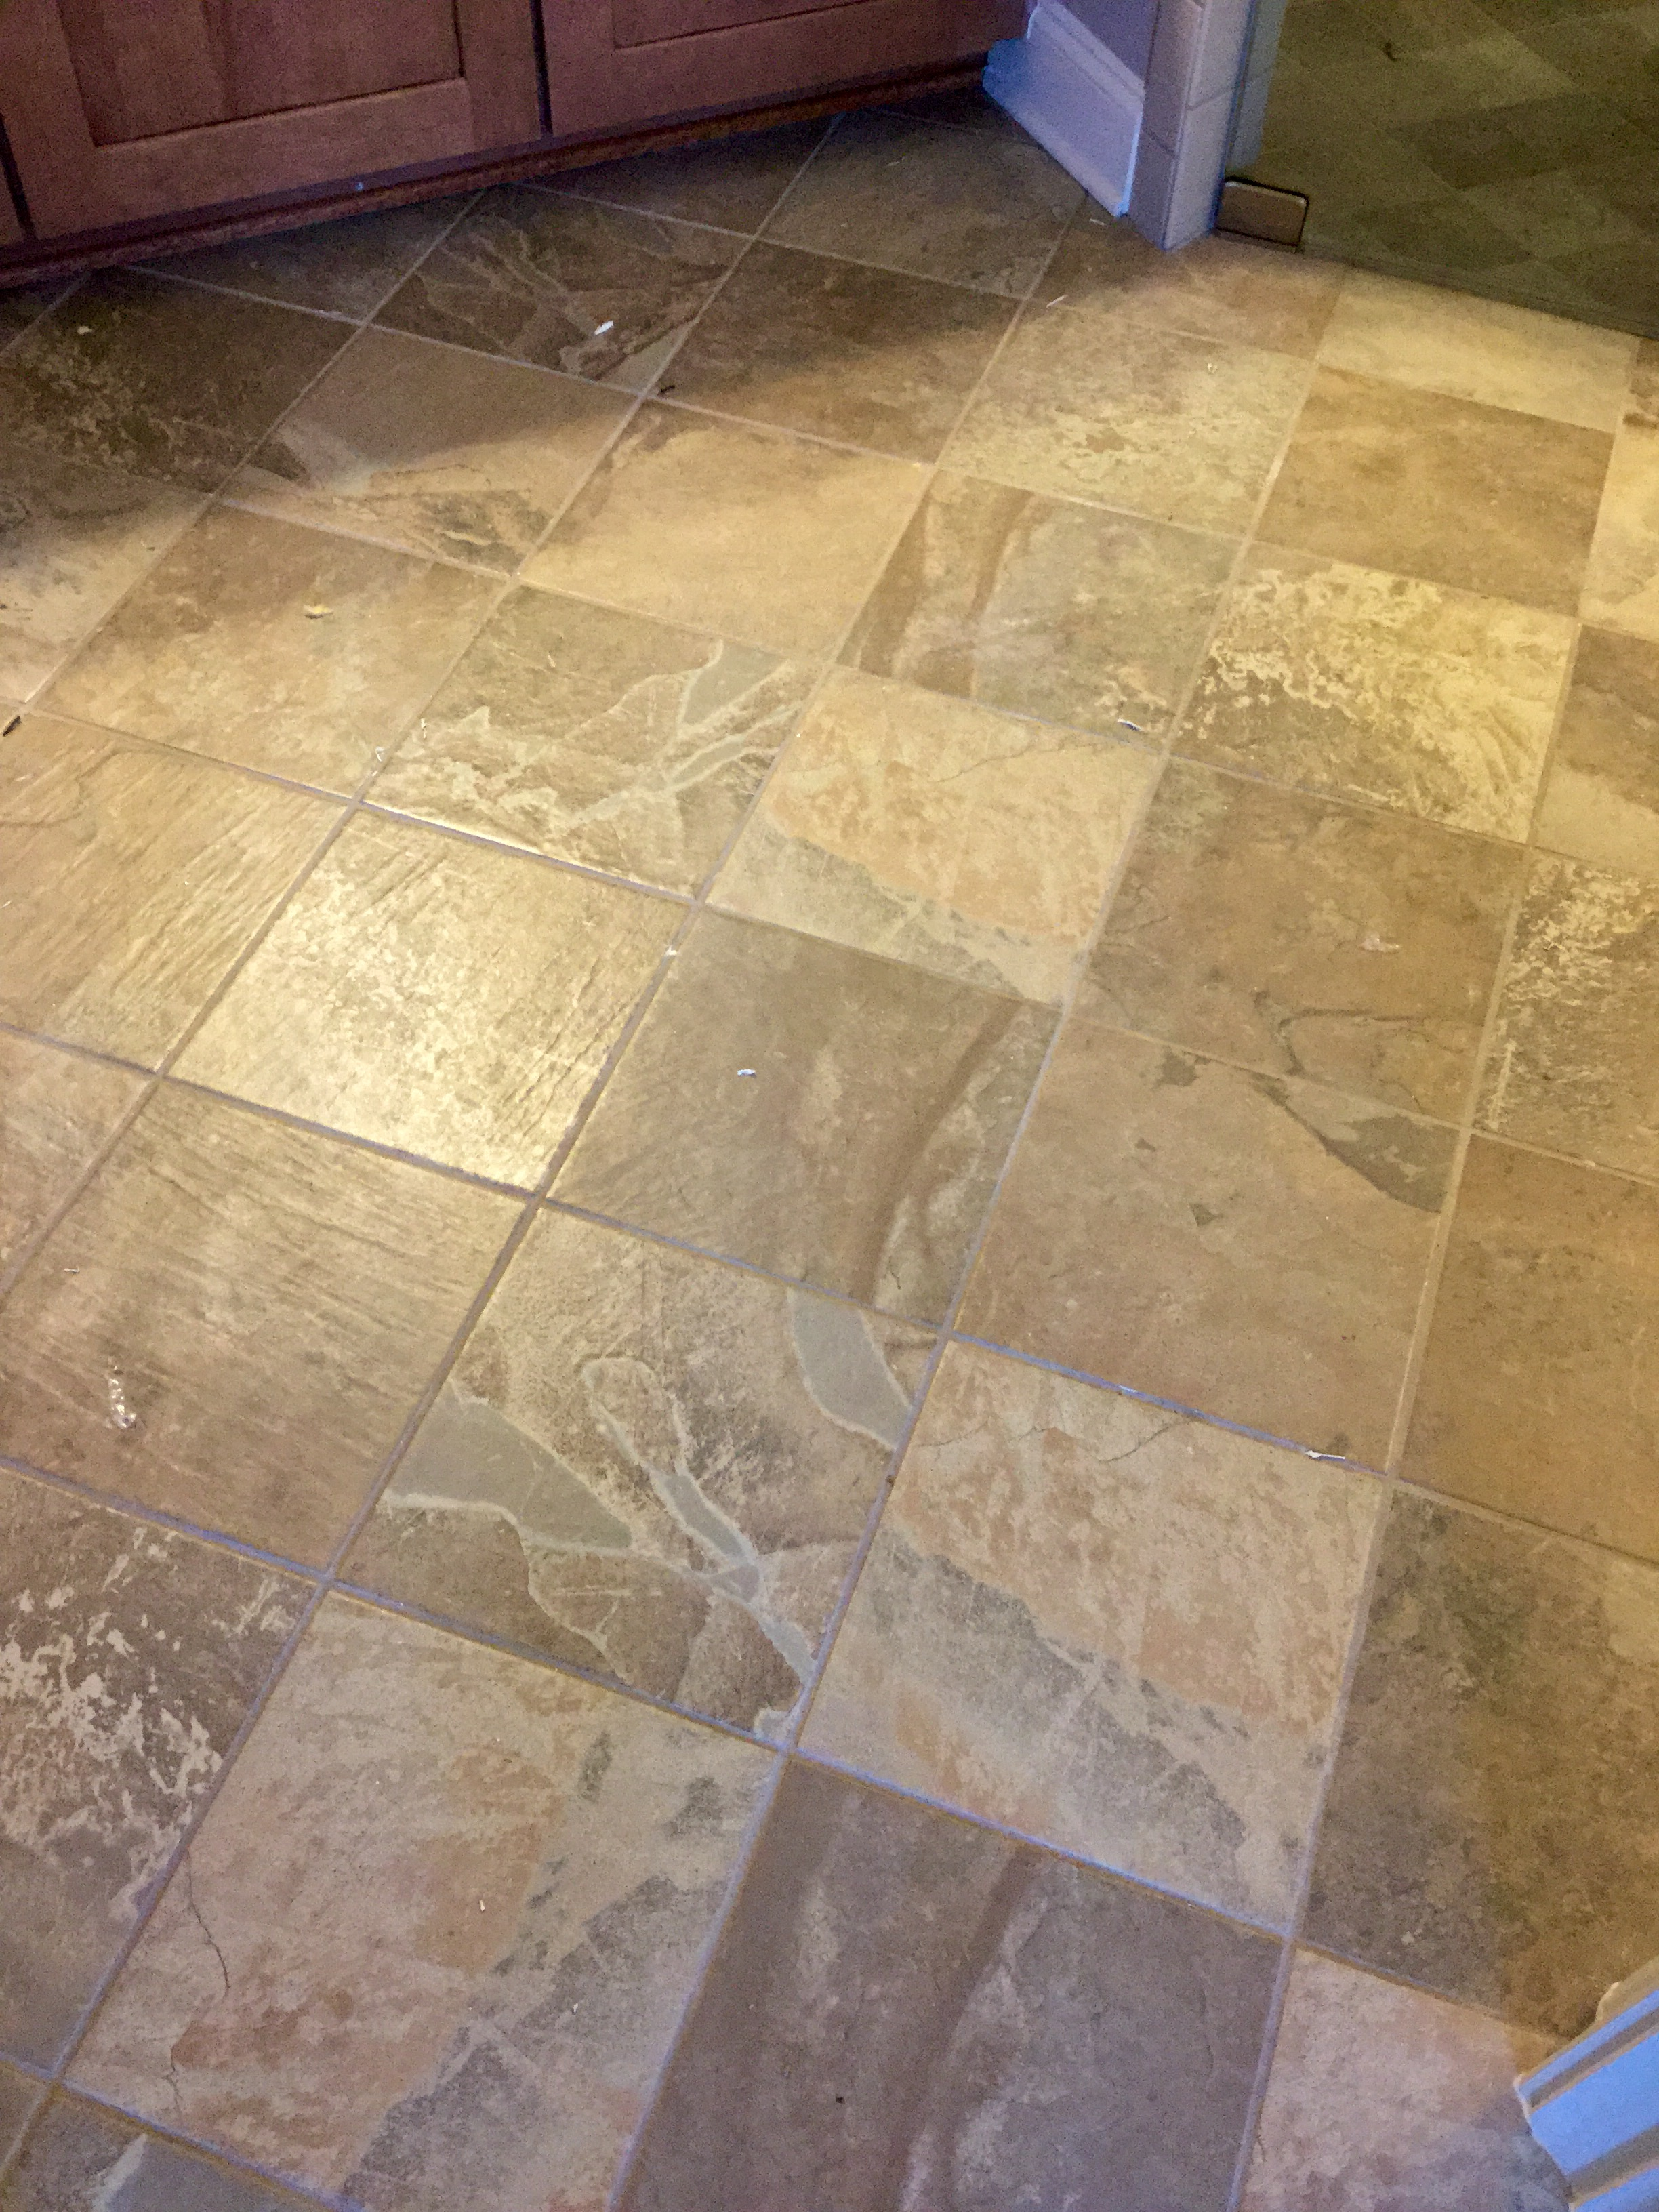 January 2015 soleil design gallery of our favorite tiles monte vista 200 its very rangy but its made to look like a natural stone the simple wall tile really makes the floor tile dailygadgetfo Images